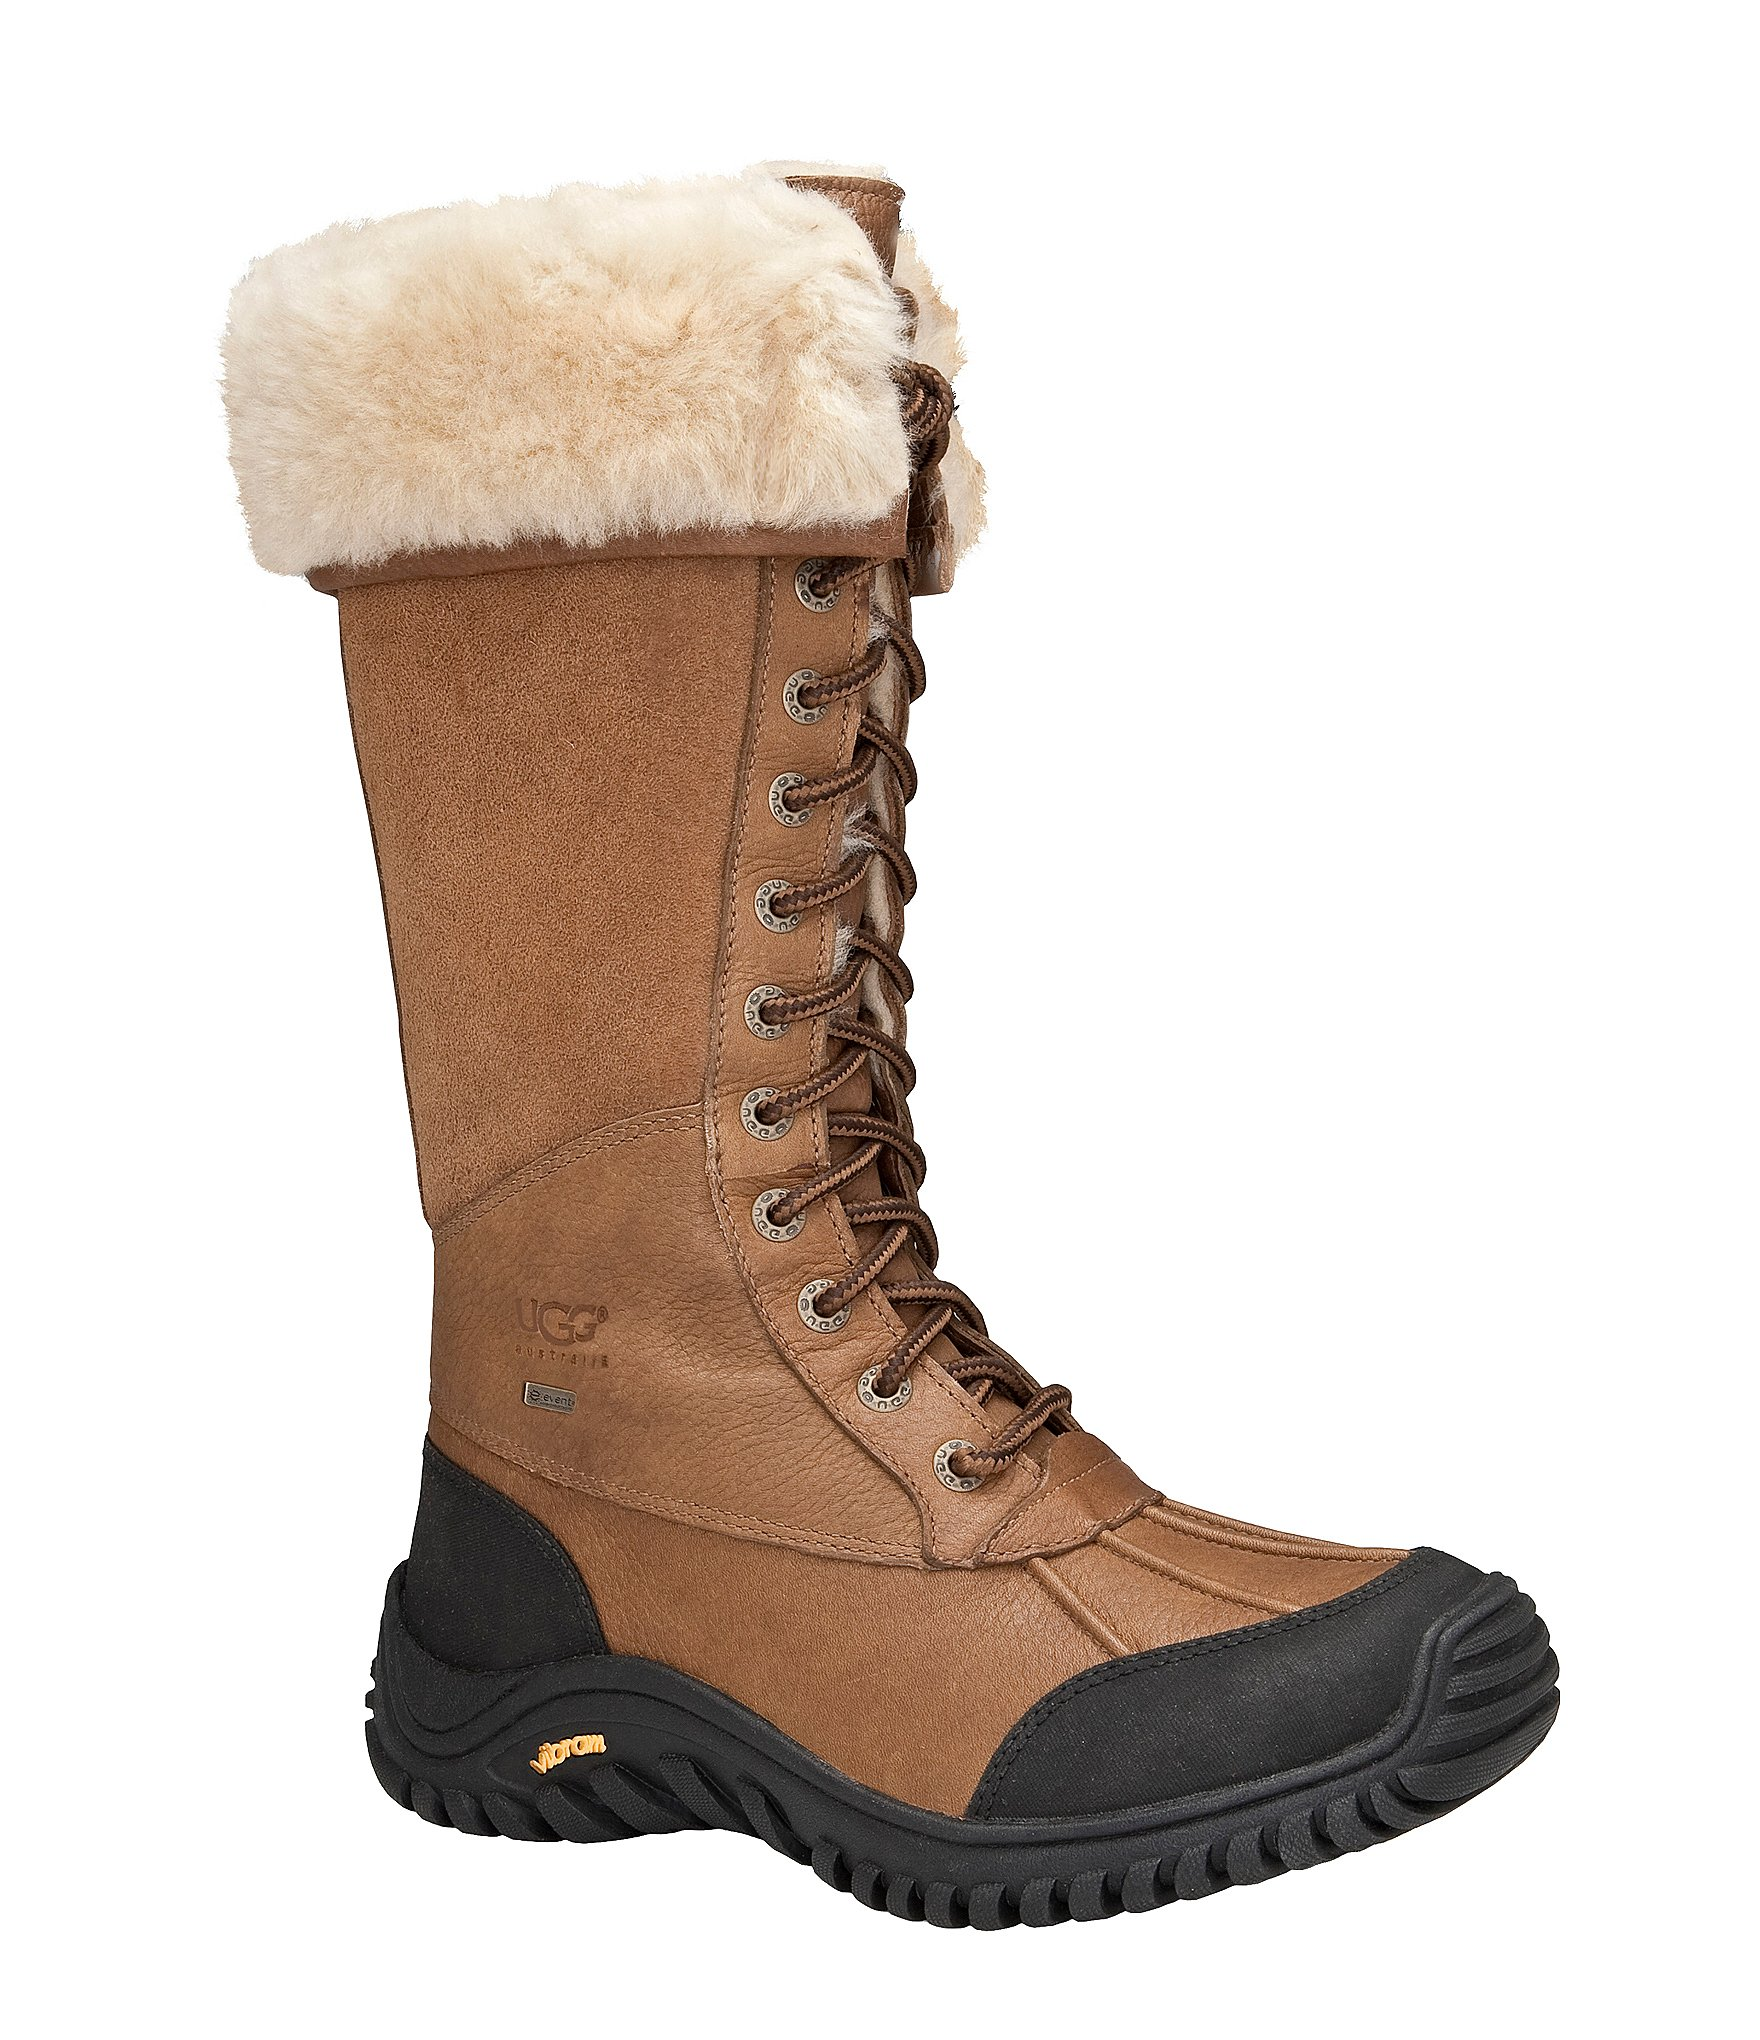 ugg australia boots sale Shop Dillards for UGG boots, slippers, accessories, home, and lingerie. Exclusive UGG boot styles, slippers for men and women, rainboots and sneakers made of the finest materials can be found by shopping Dillards.